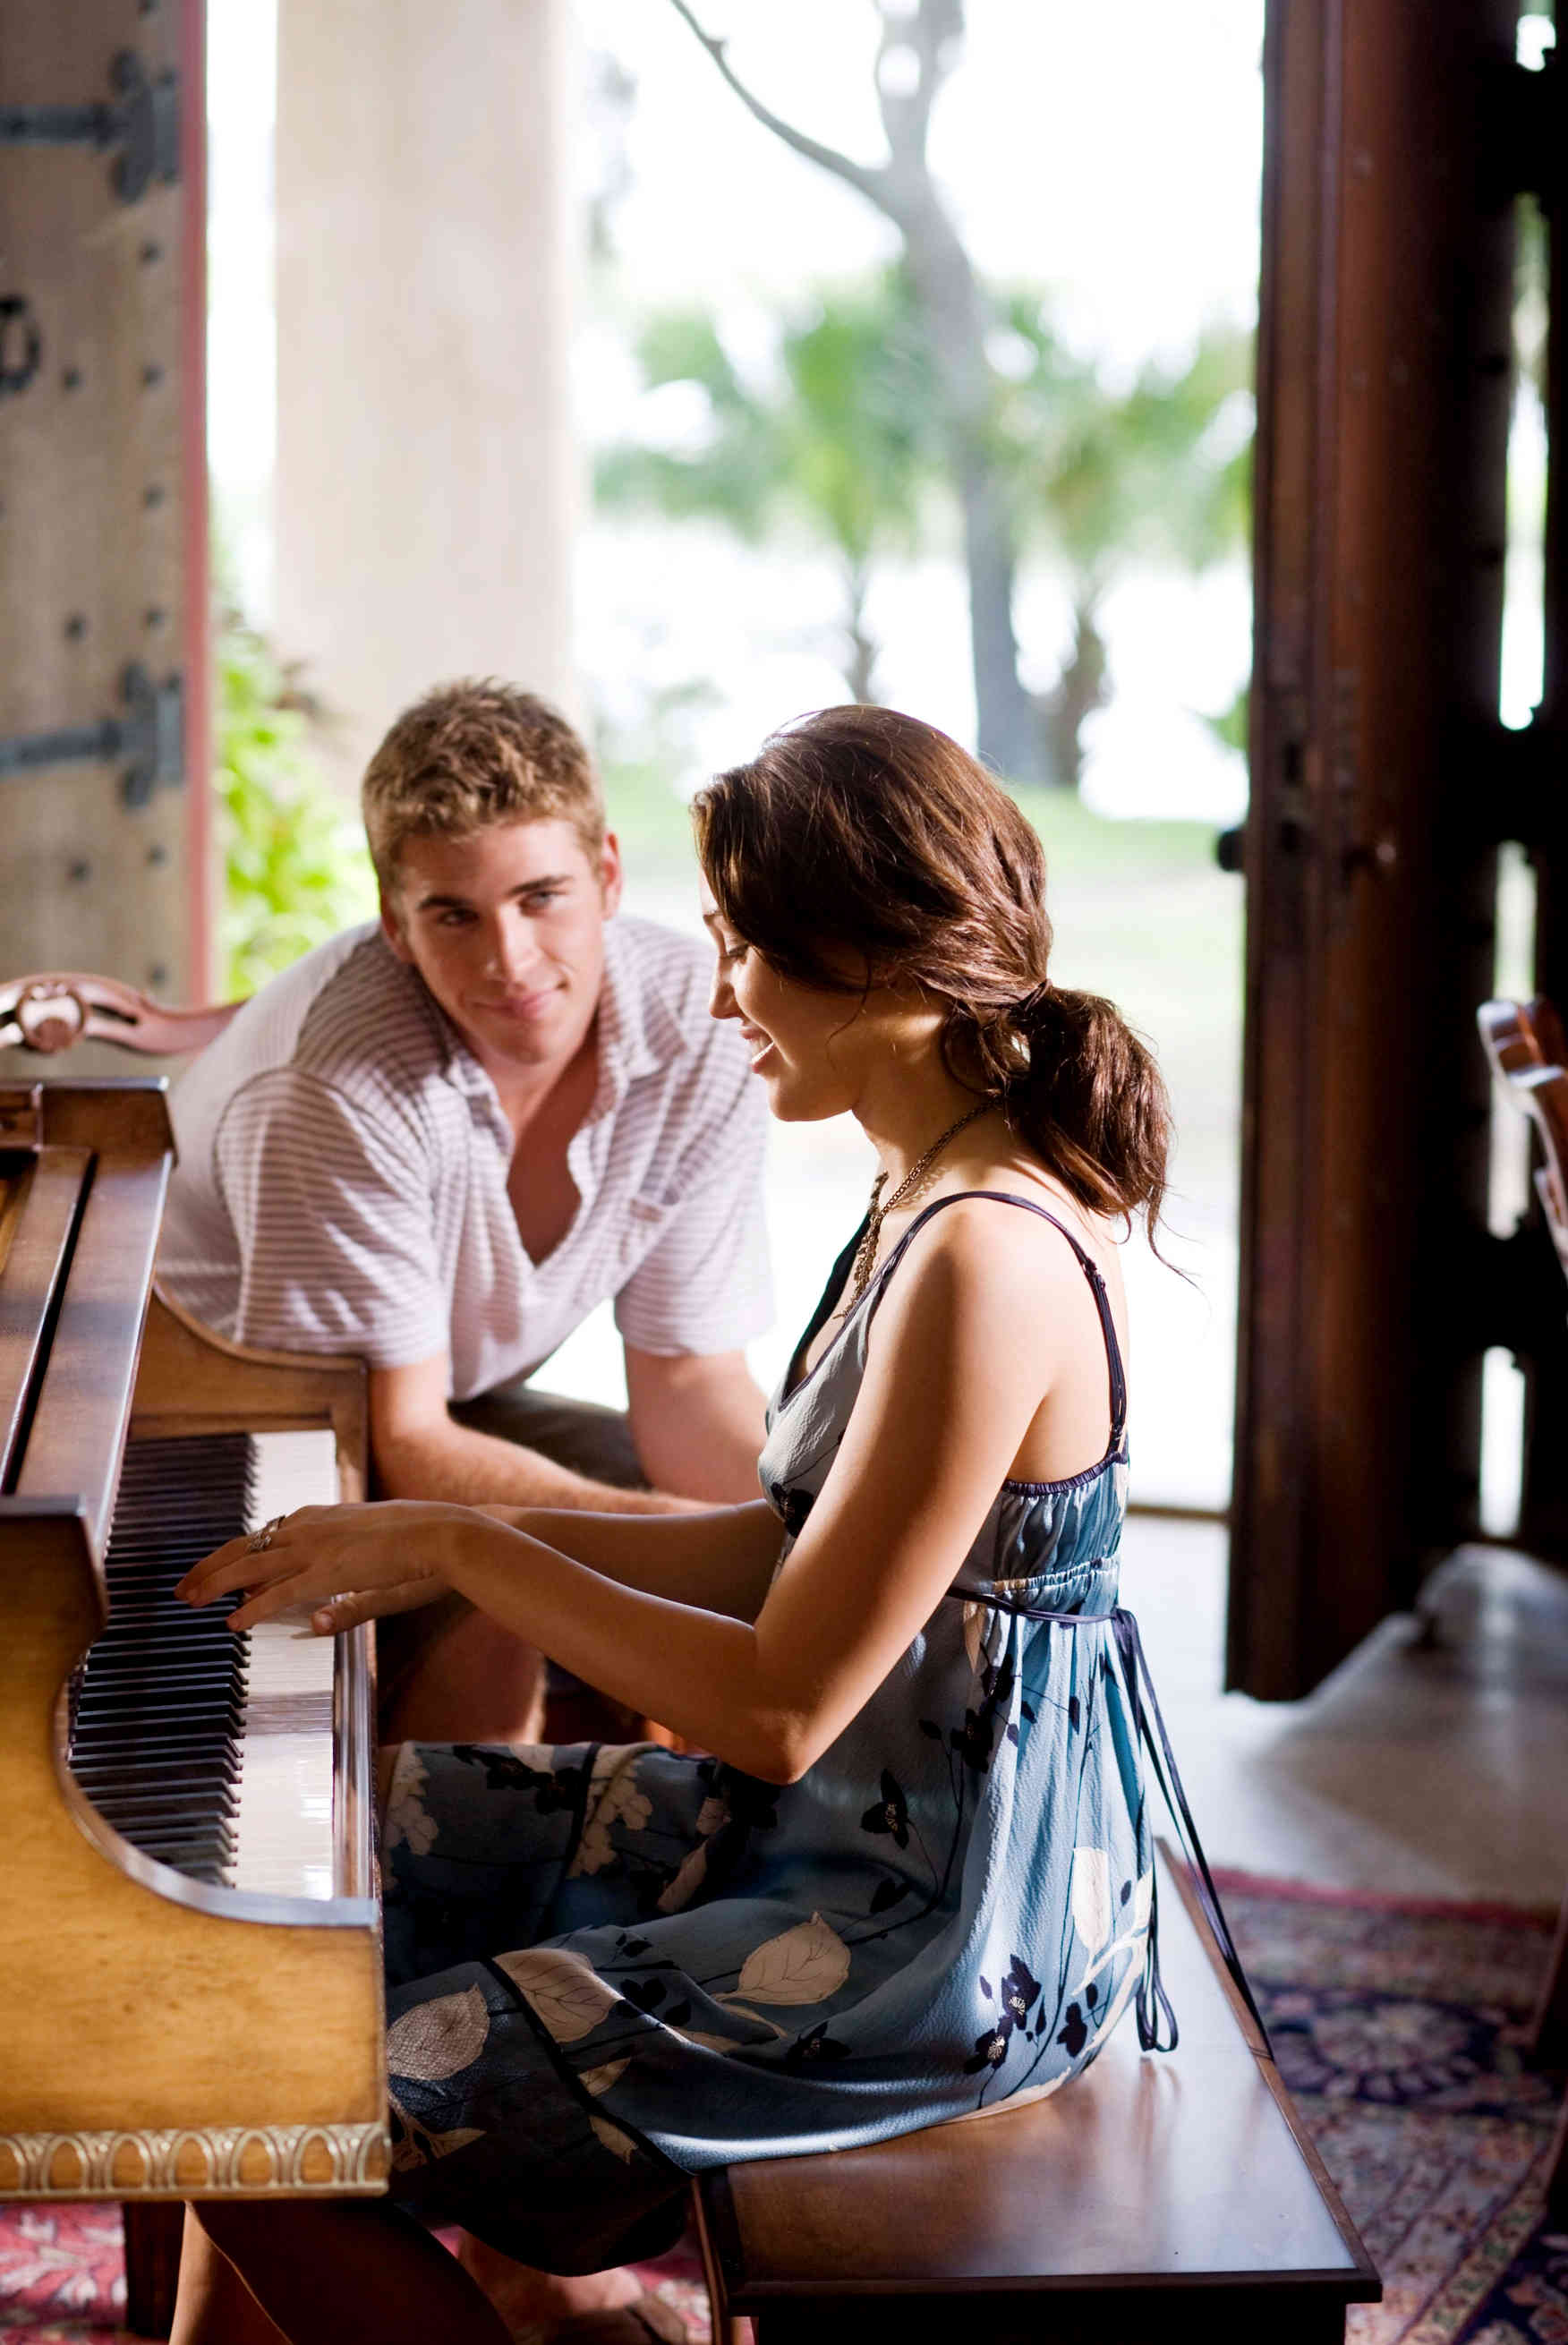 Miley Cyrus' 'The Last Song' Unleashes New Stills